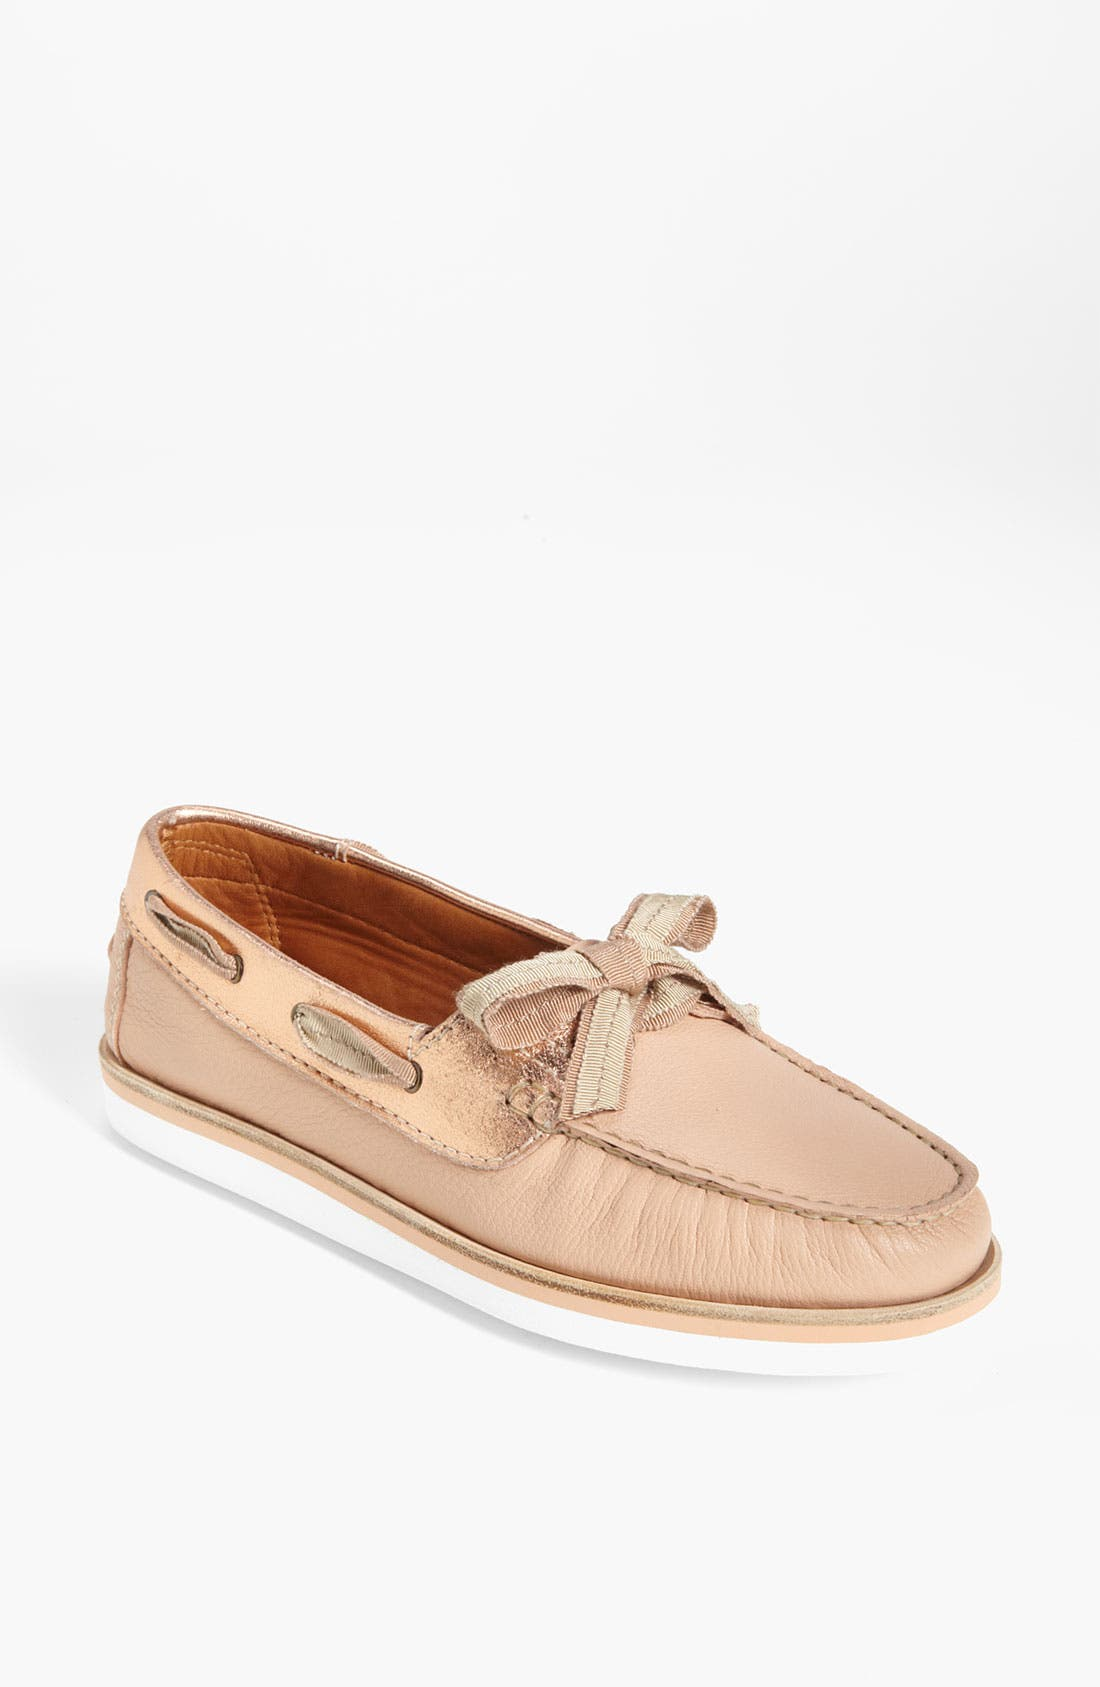 Alternate Image 1 Selected - Lanvin Loafer